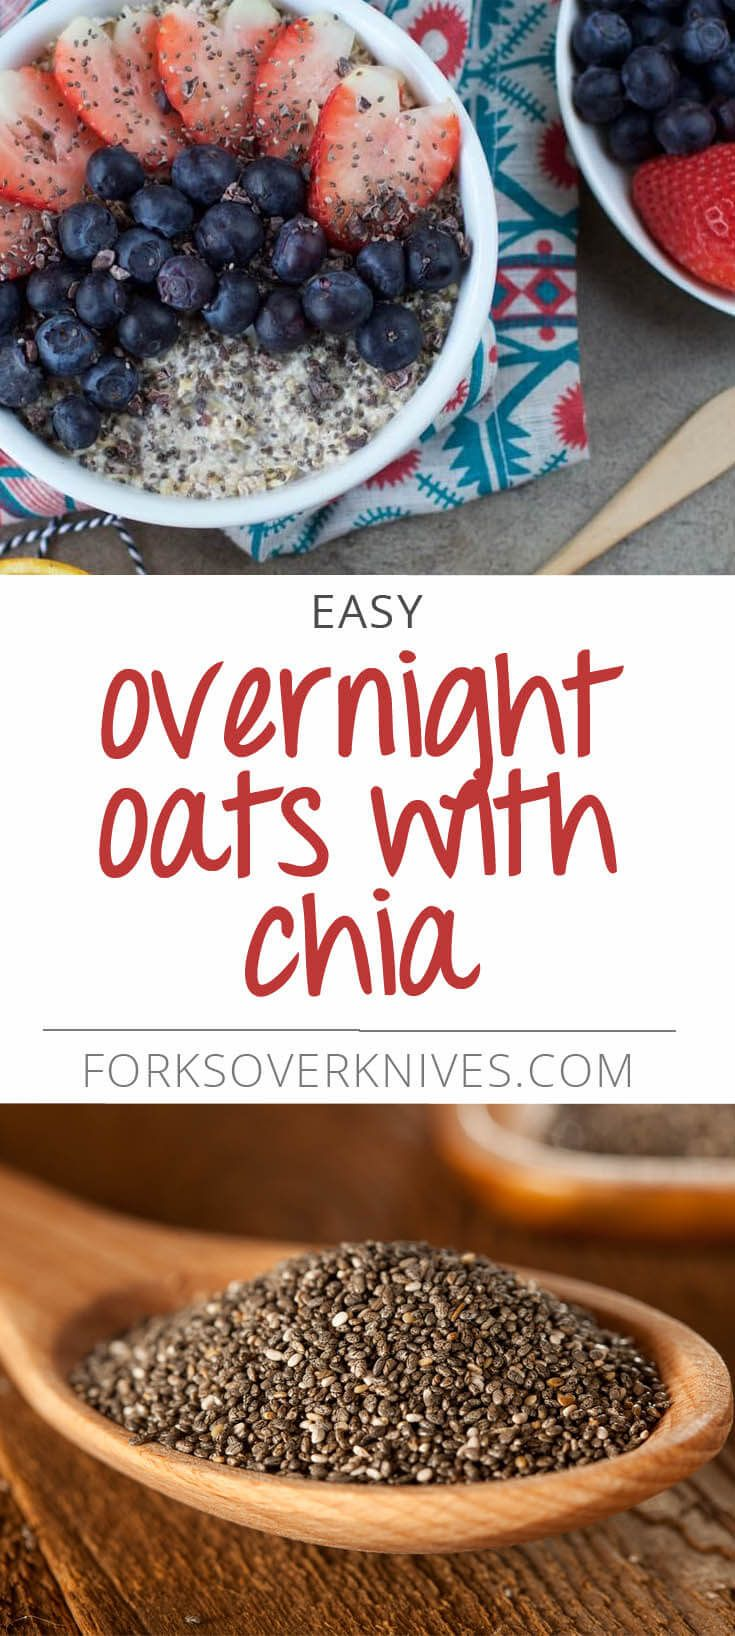 To get through those busy weeks, try this easy and healthy breakfast that you can make the night before. Instructions 1)Place oats, liquid, chia seeds, maple syrup, cinnamon, and vanillainto a 16-ounce mason jar or container of choice. Mix well....  Read more